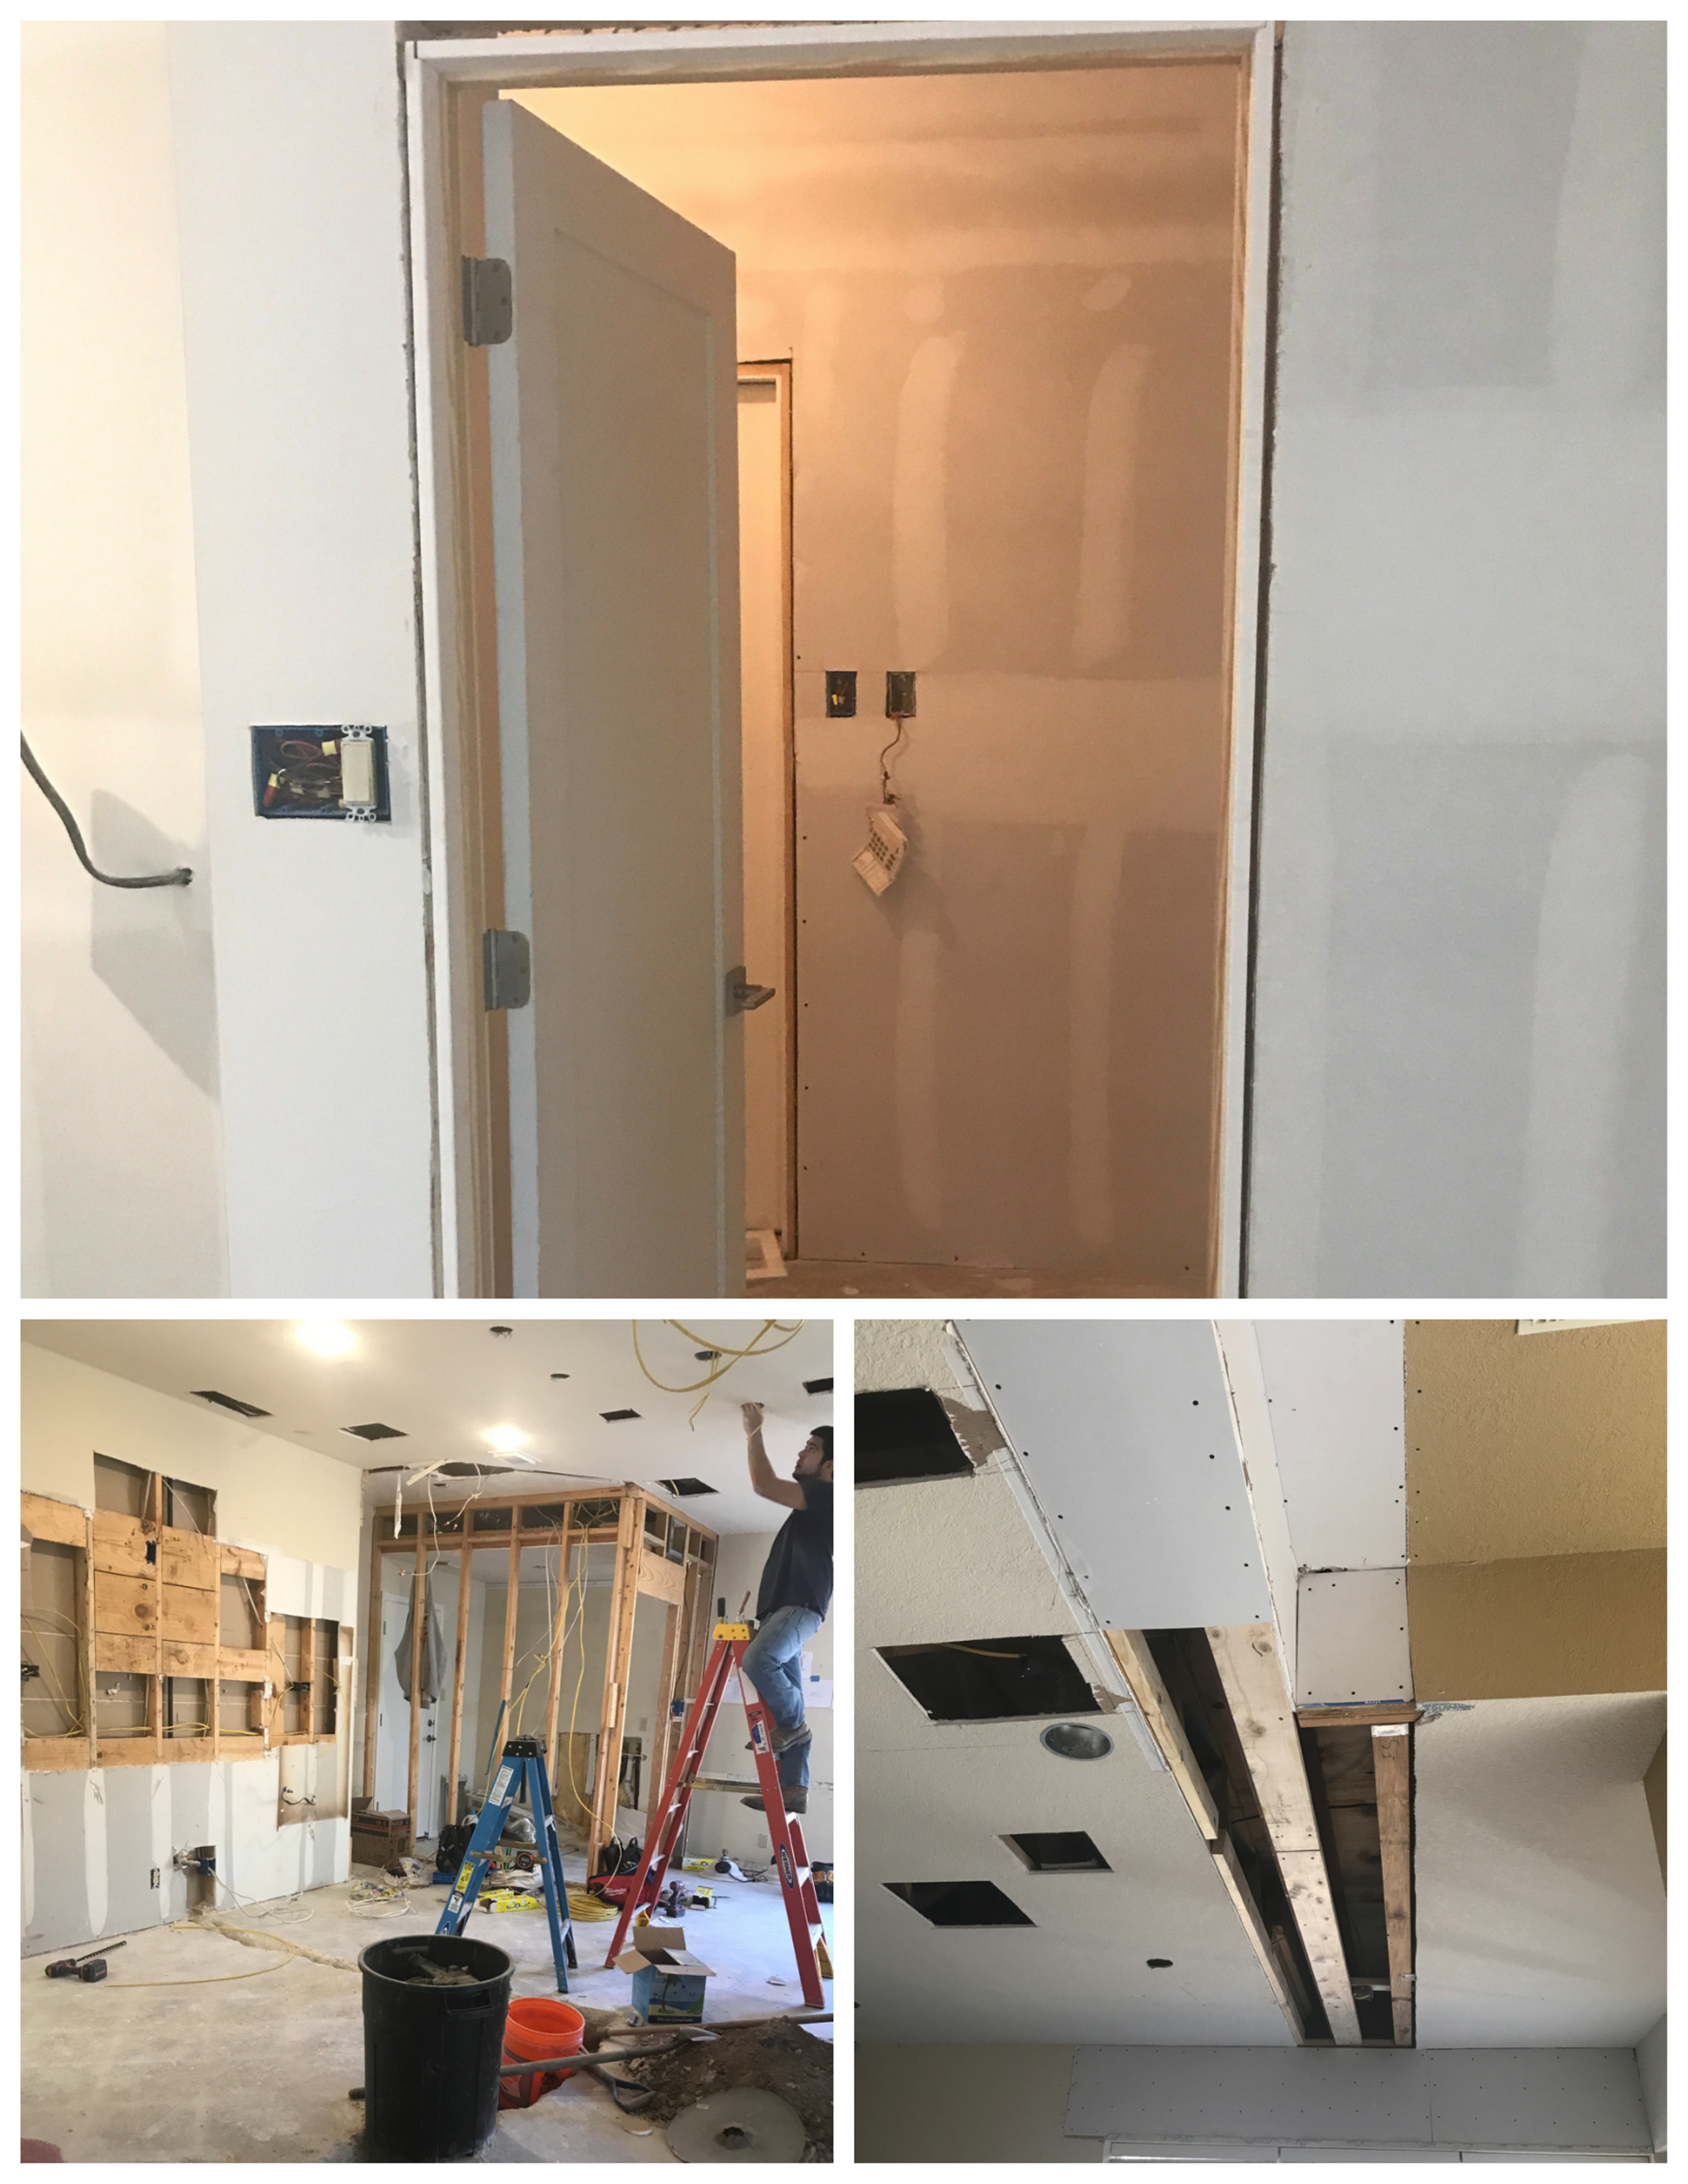 (above) extending the laundry room into the garage; (LEft) installing the electrical; (right)dry wall going back up over the beam installed in the kitchen.